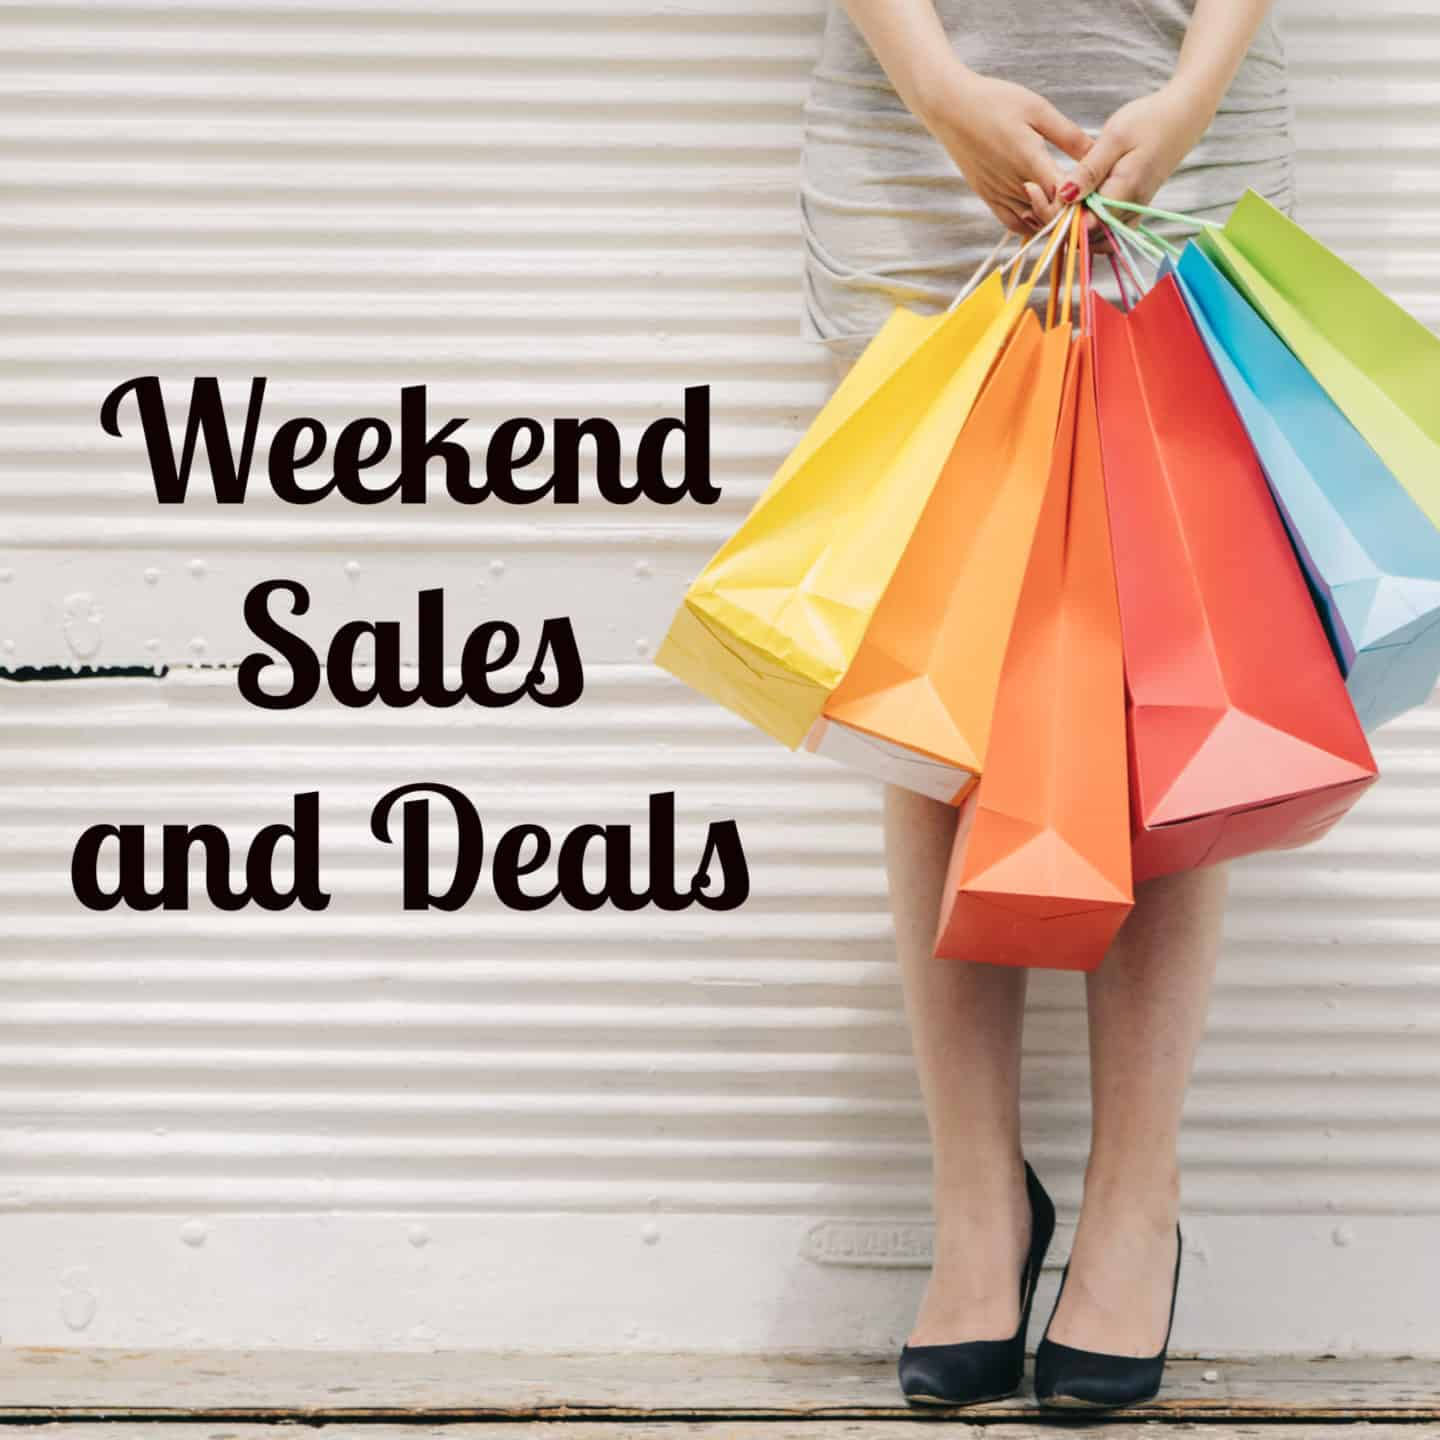 sales and deals, weekend sales and deals, shopping